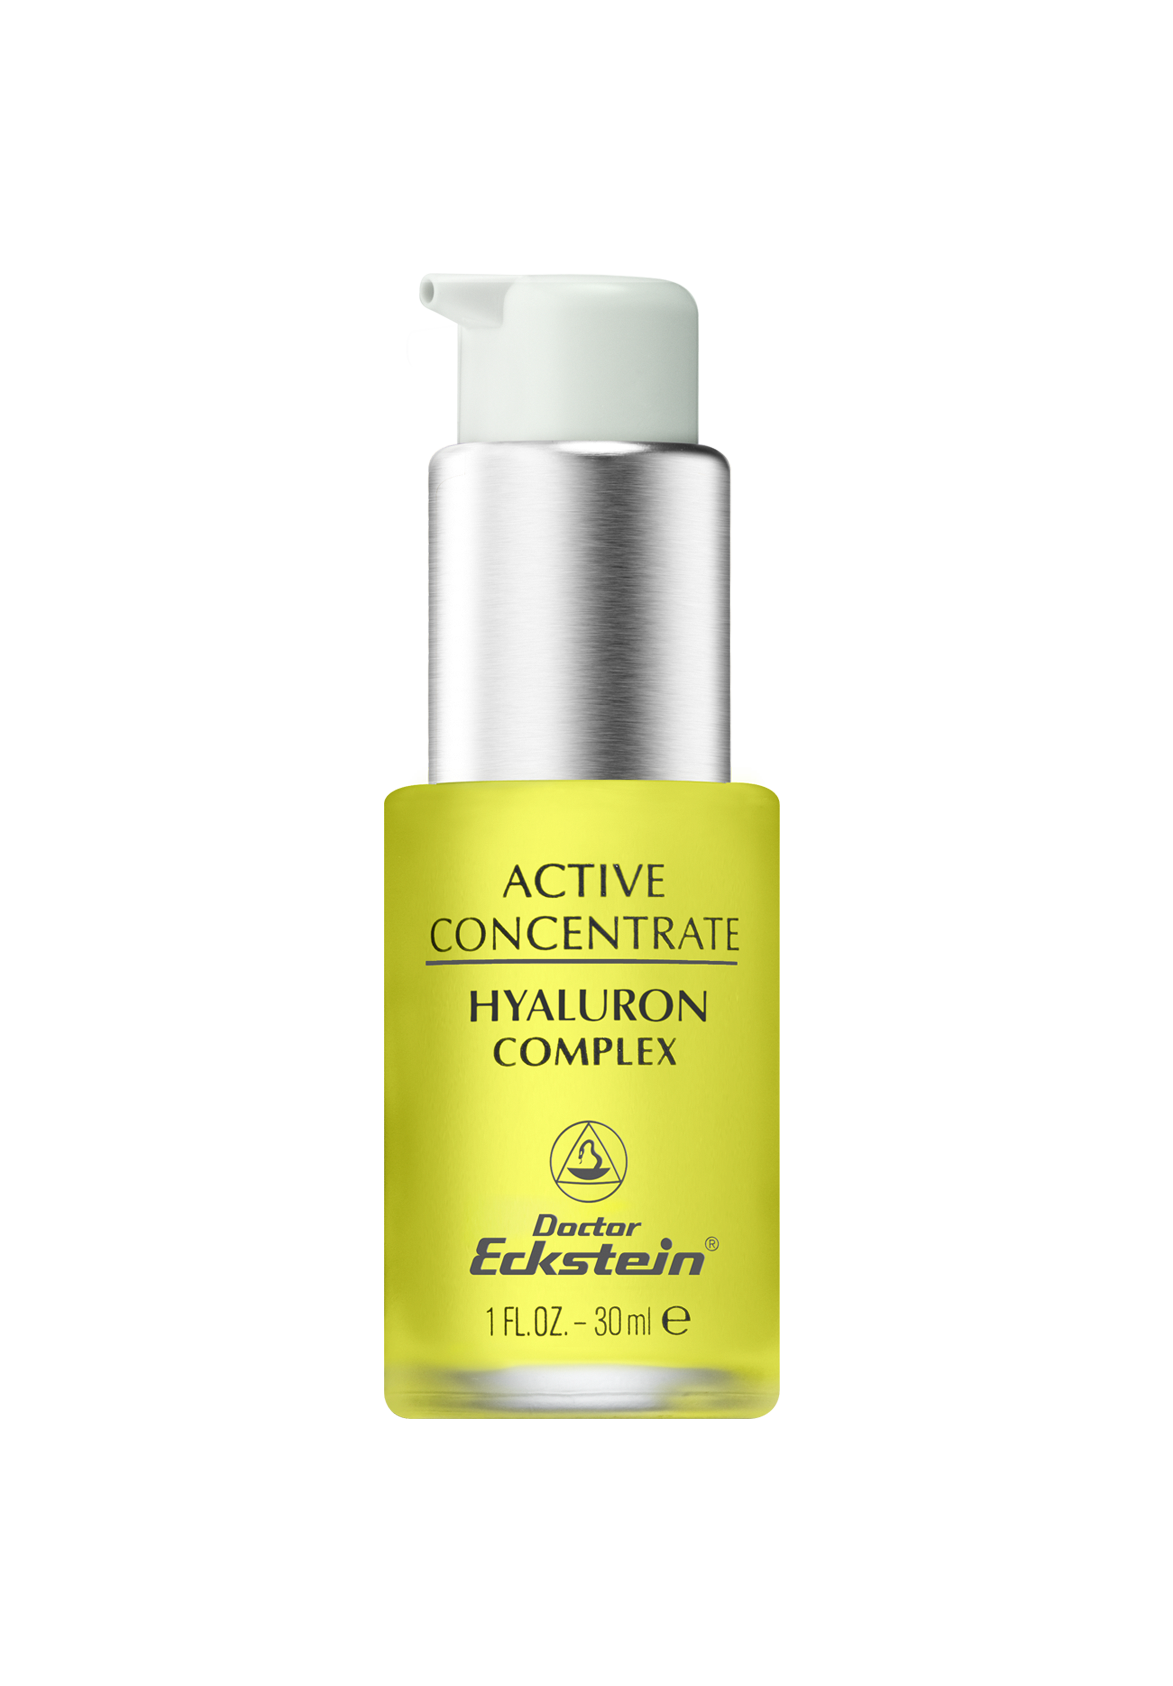 Active Concentrate Hyaluron Complex 30 ml